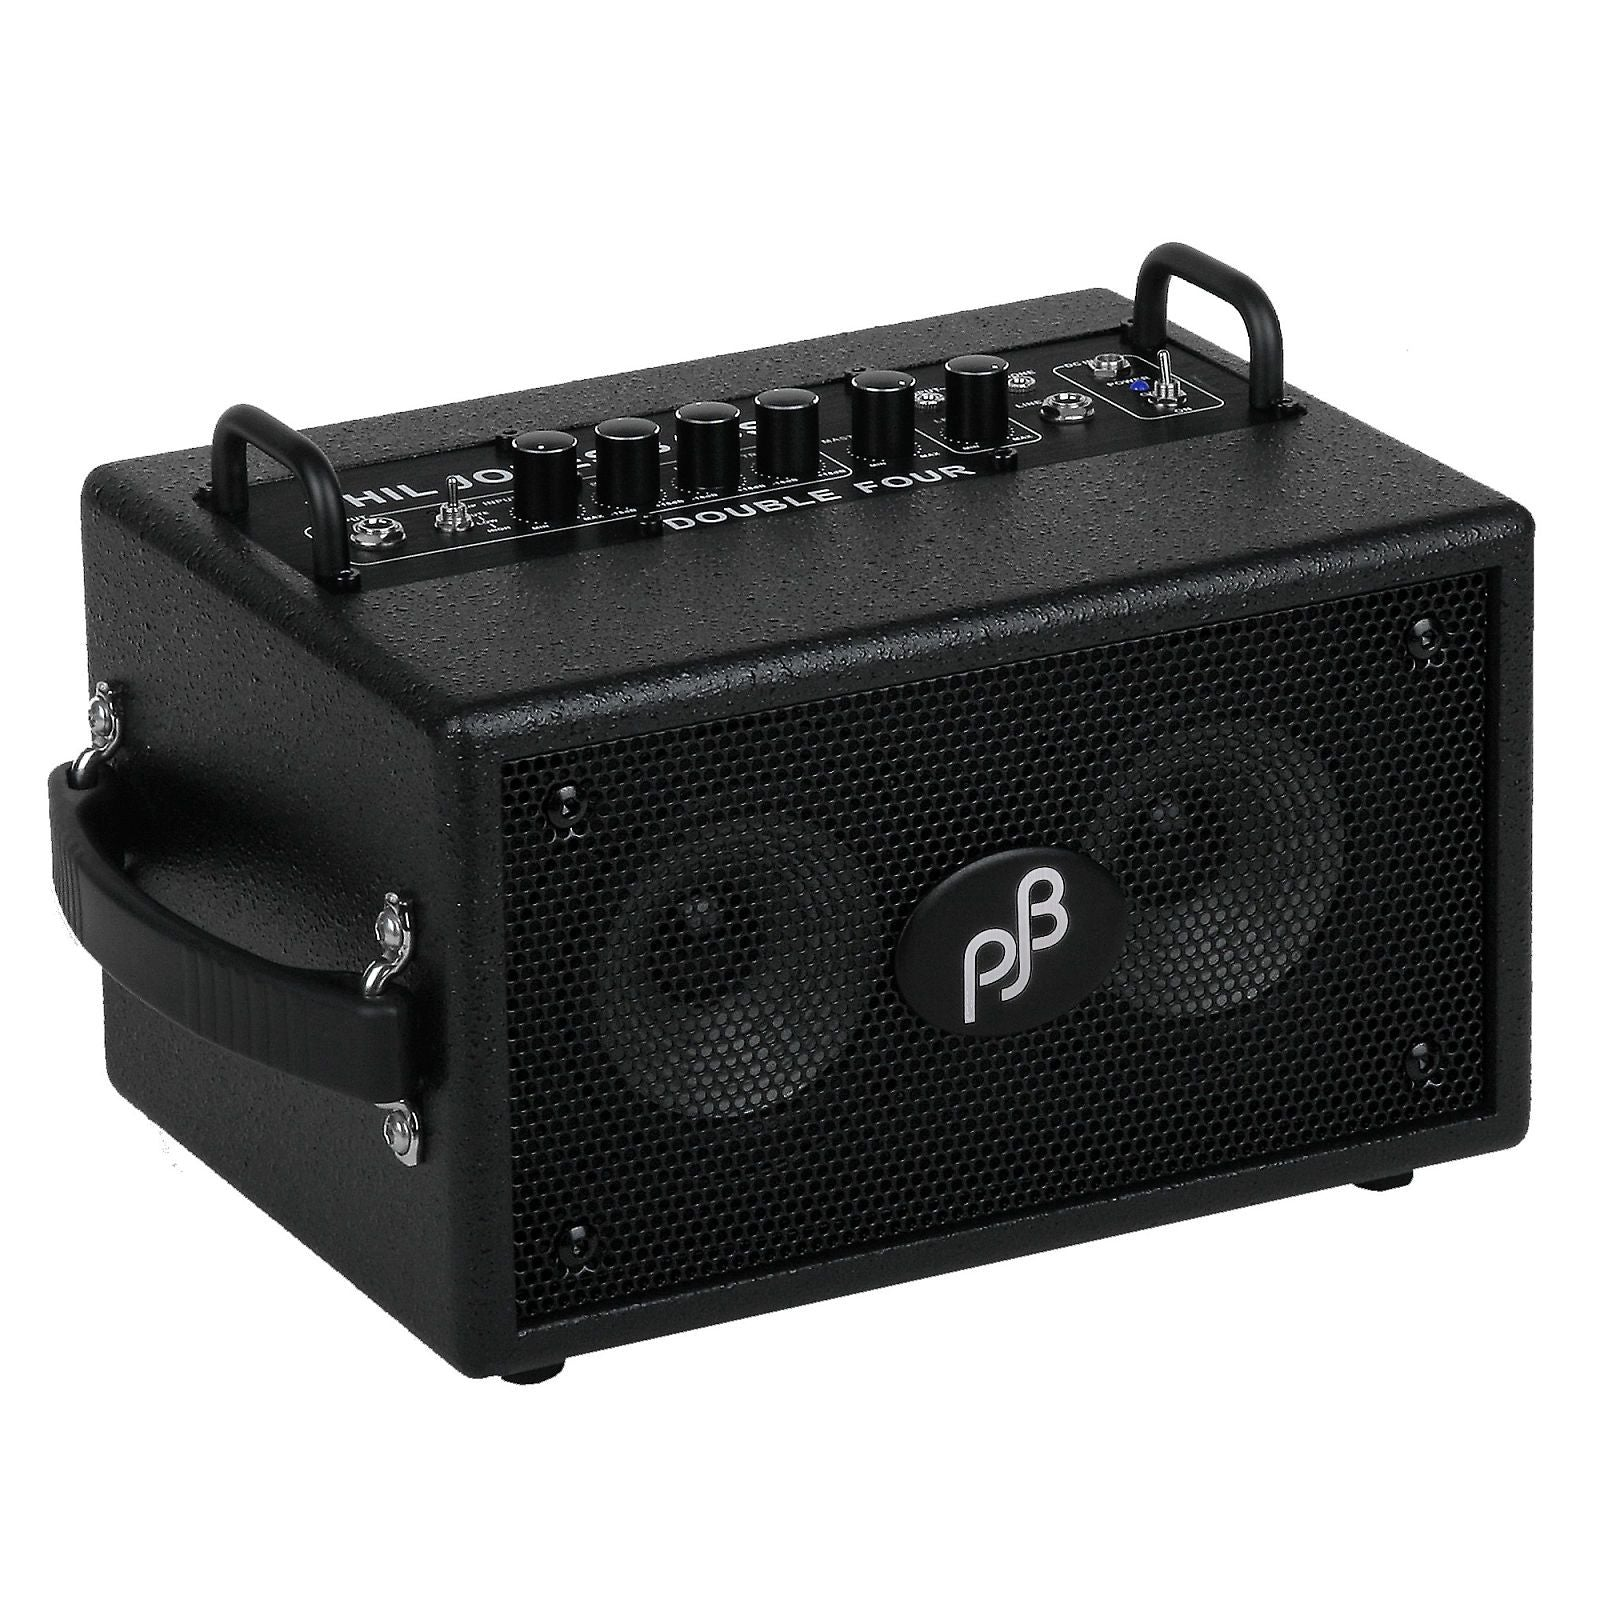 Phil Jones Double Four BG-75 Bass Combo Amplifier, Black